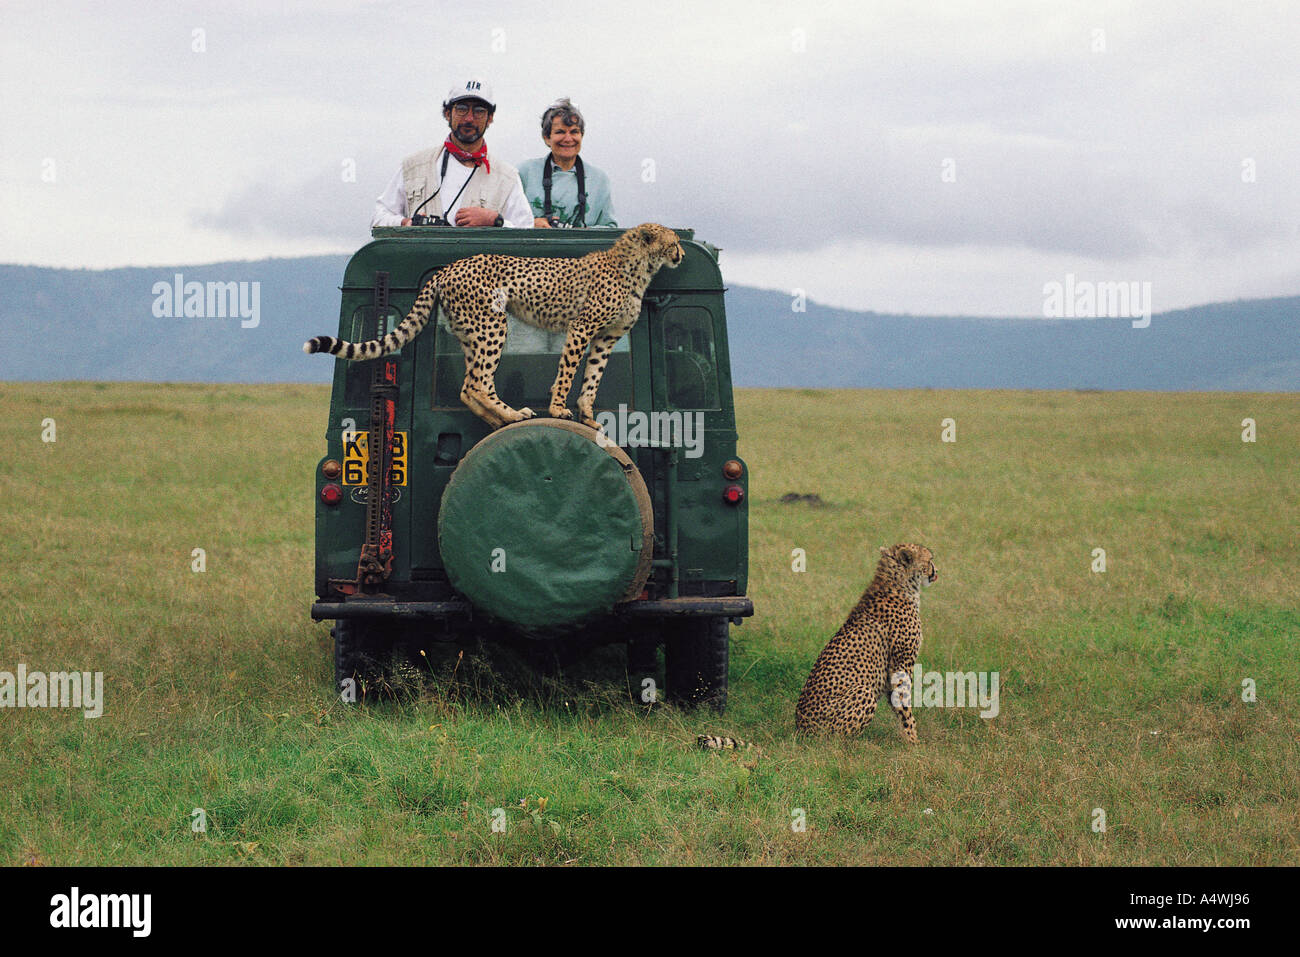 Habituated wild female cheetah standing on spare wheel of Land Rover in the Masai Mara National Reserve Kenya East Africa - Stock Image